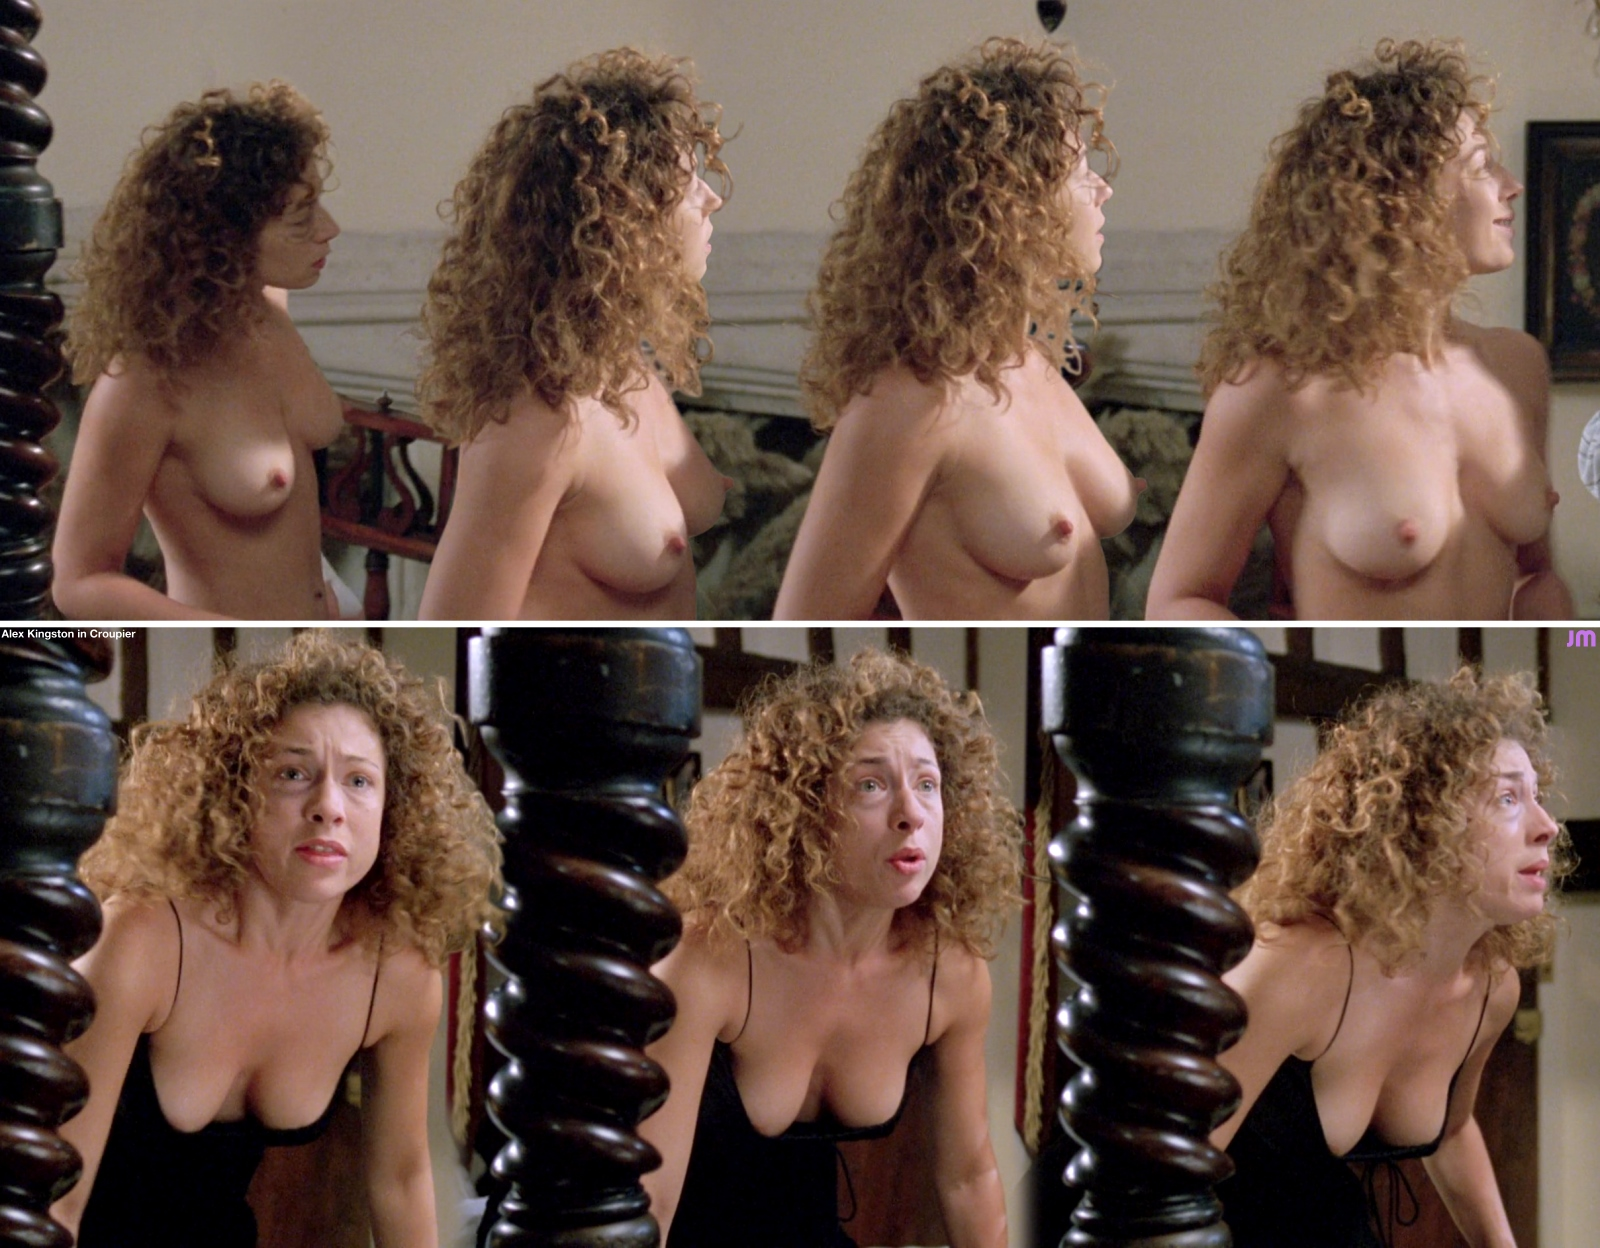 Alex kingston vintage erotica forums